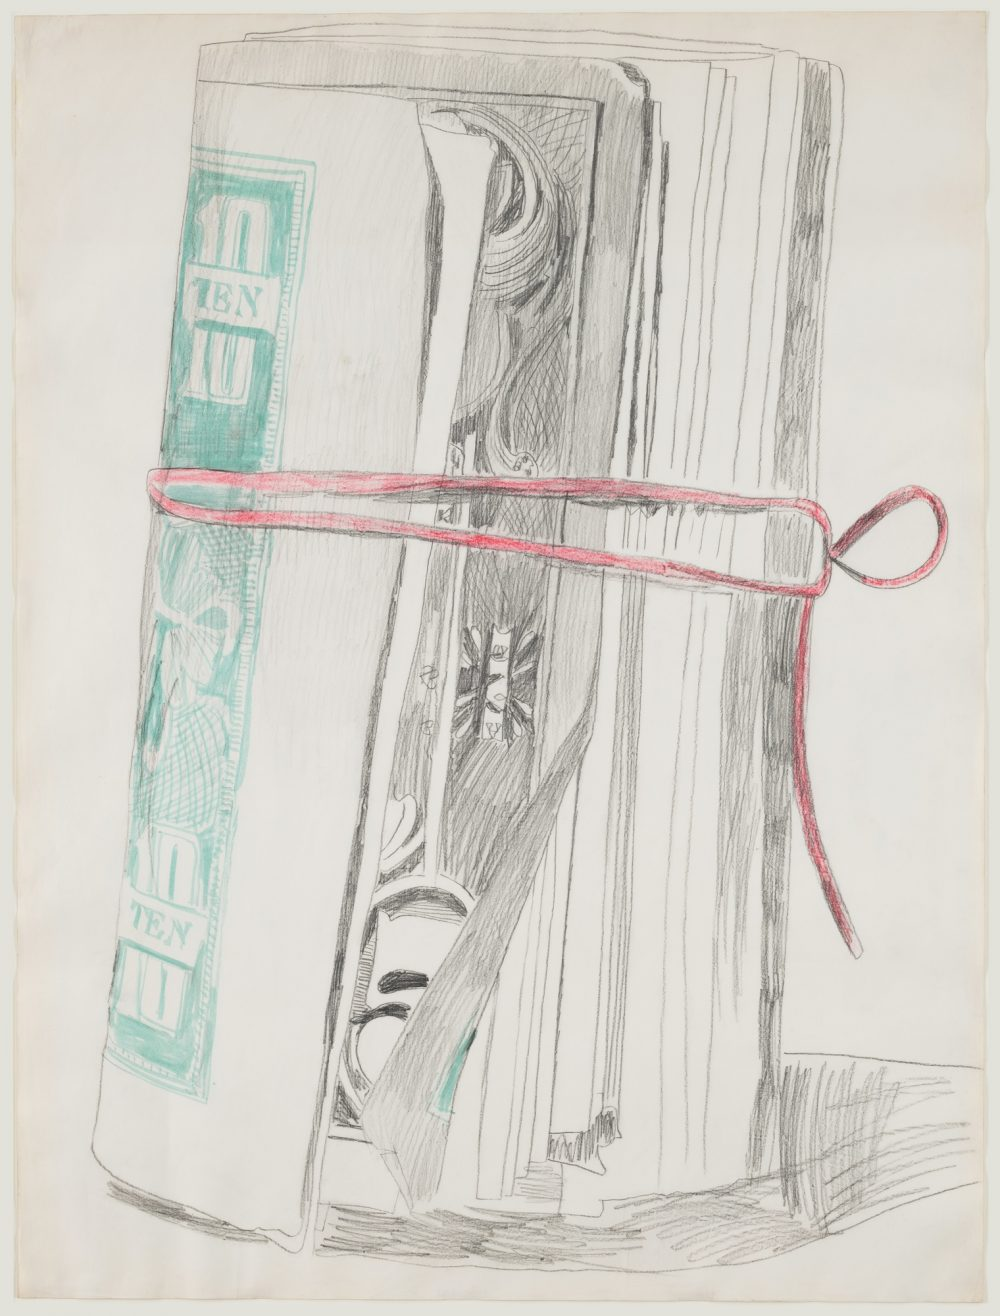 Andy Warhol money drawing